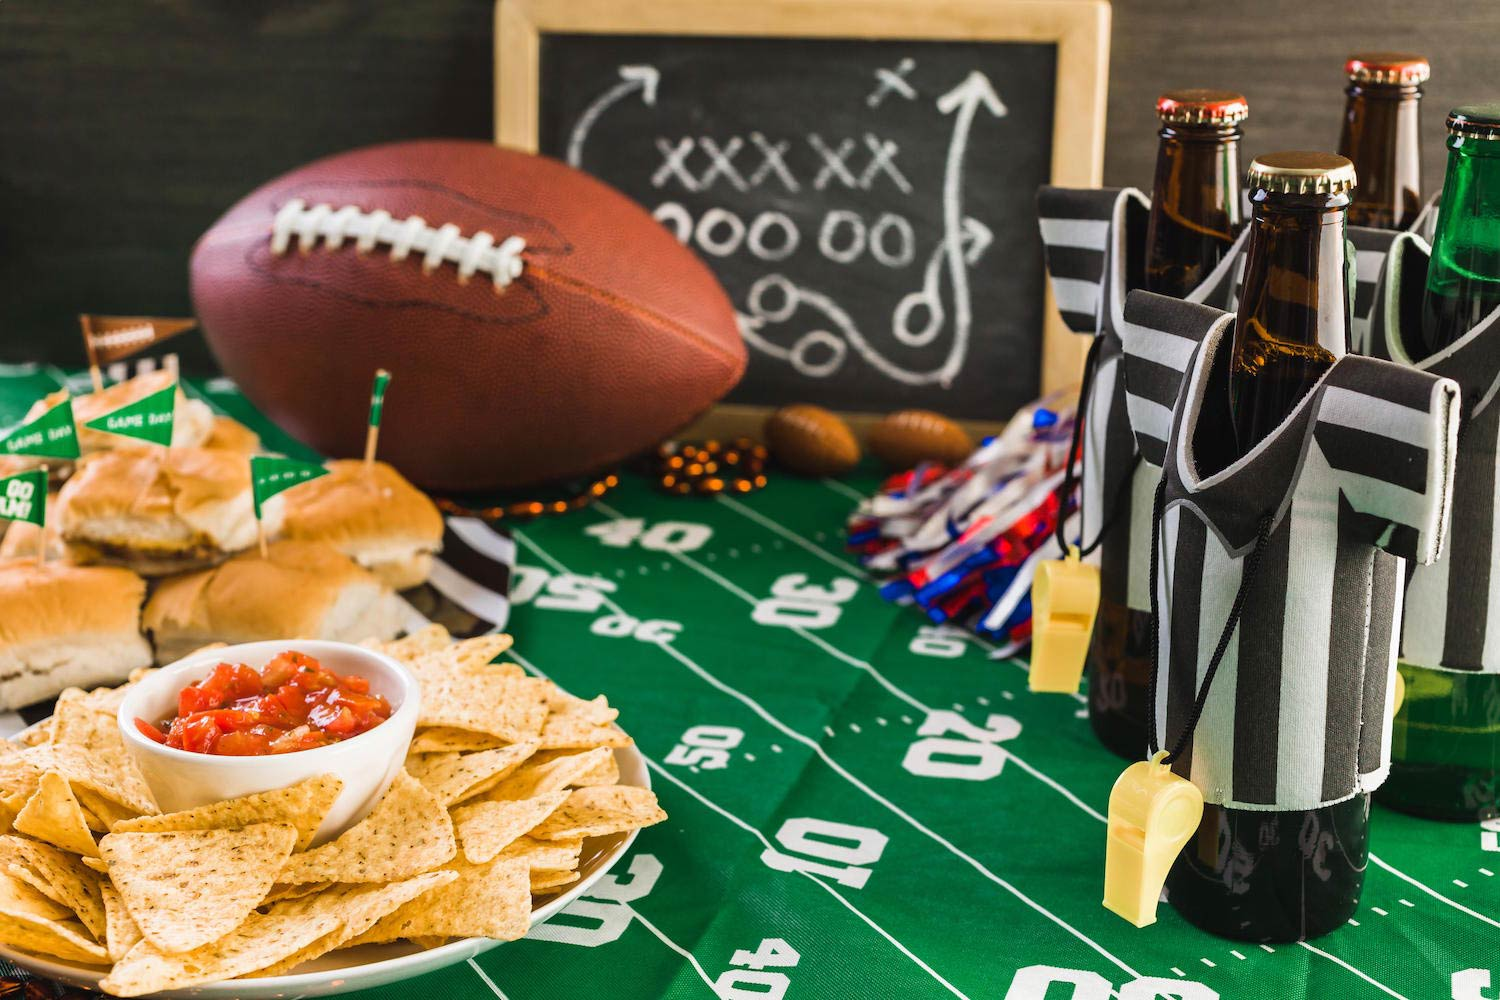 Where To Watch The Super Bowl In #HipNJ